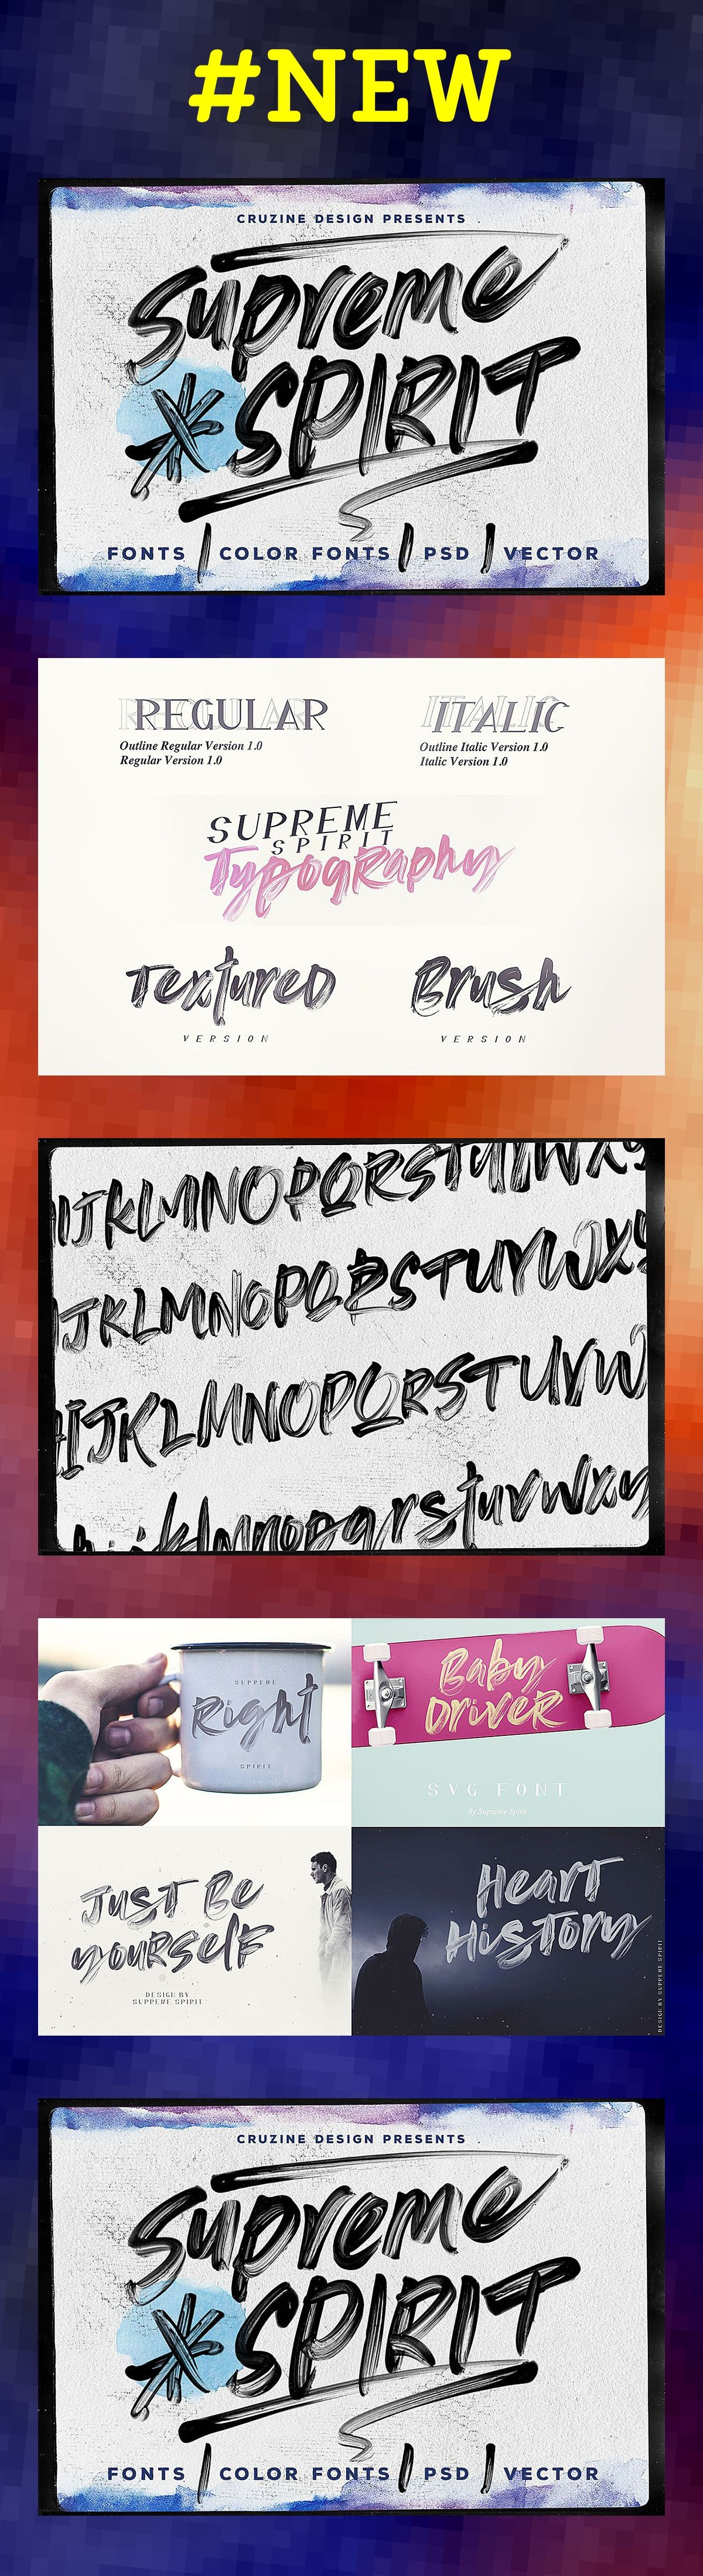 Supreme Spirit Brush Font Brush font, Fancy fonts